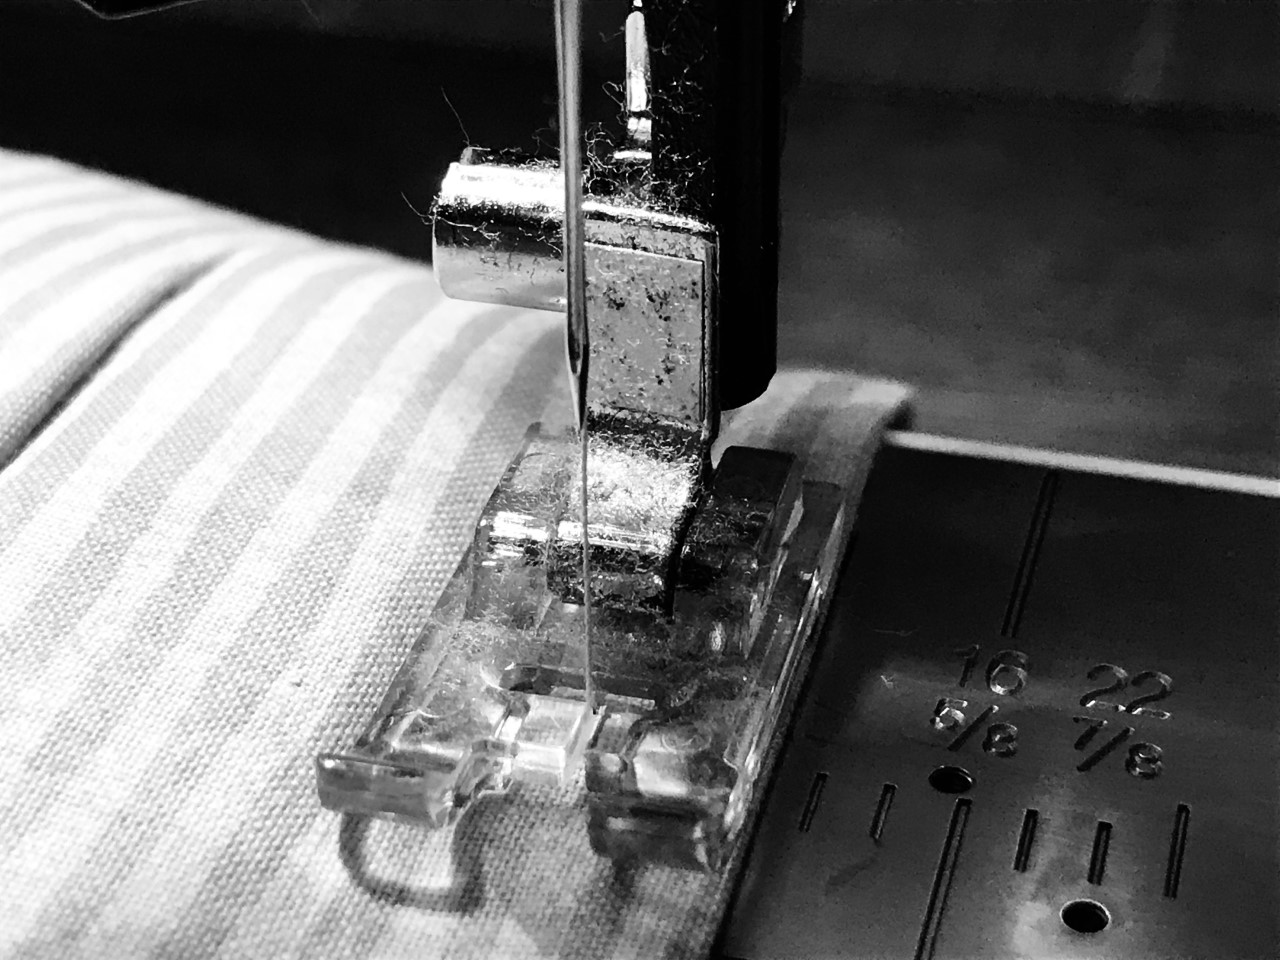 Needle and foot of a sewing machine.